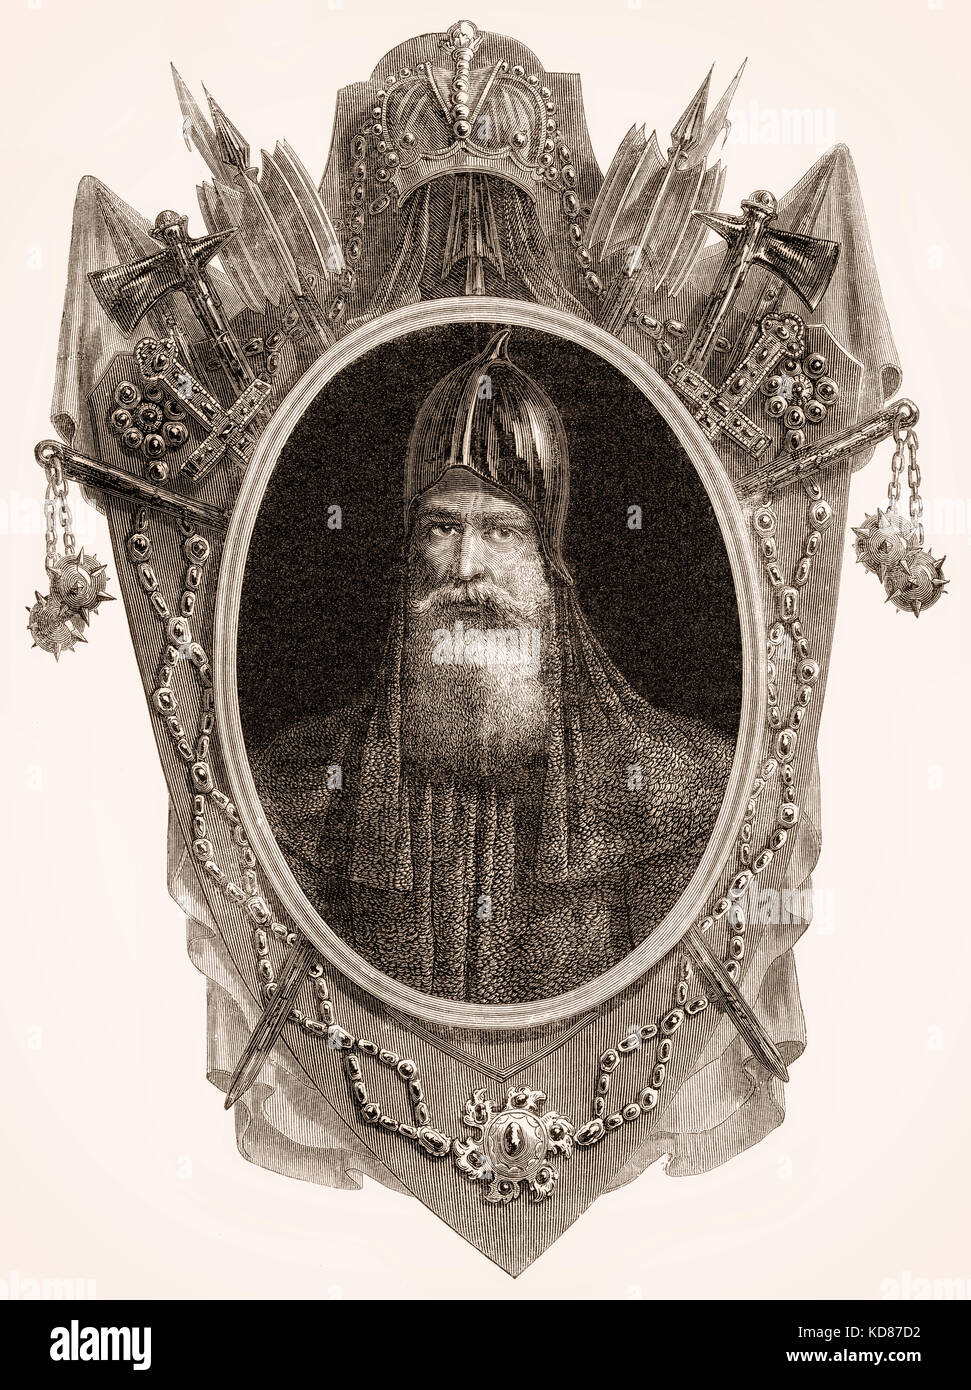 Igor I, a Varangian ruler of Kievan Rus' from 912 to 945 - Stock Image